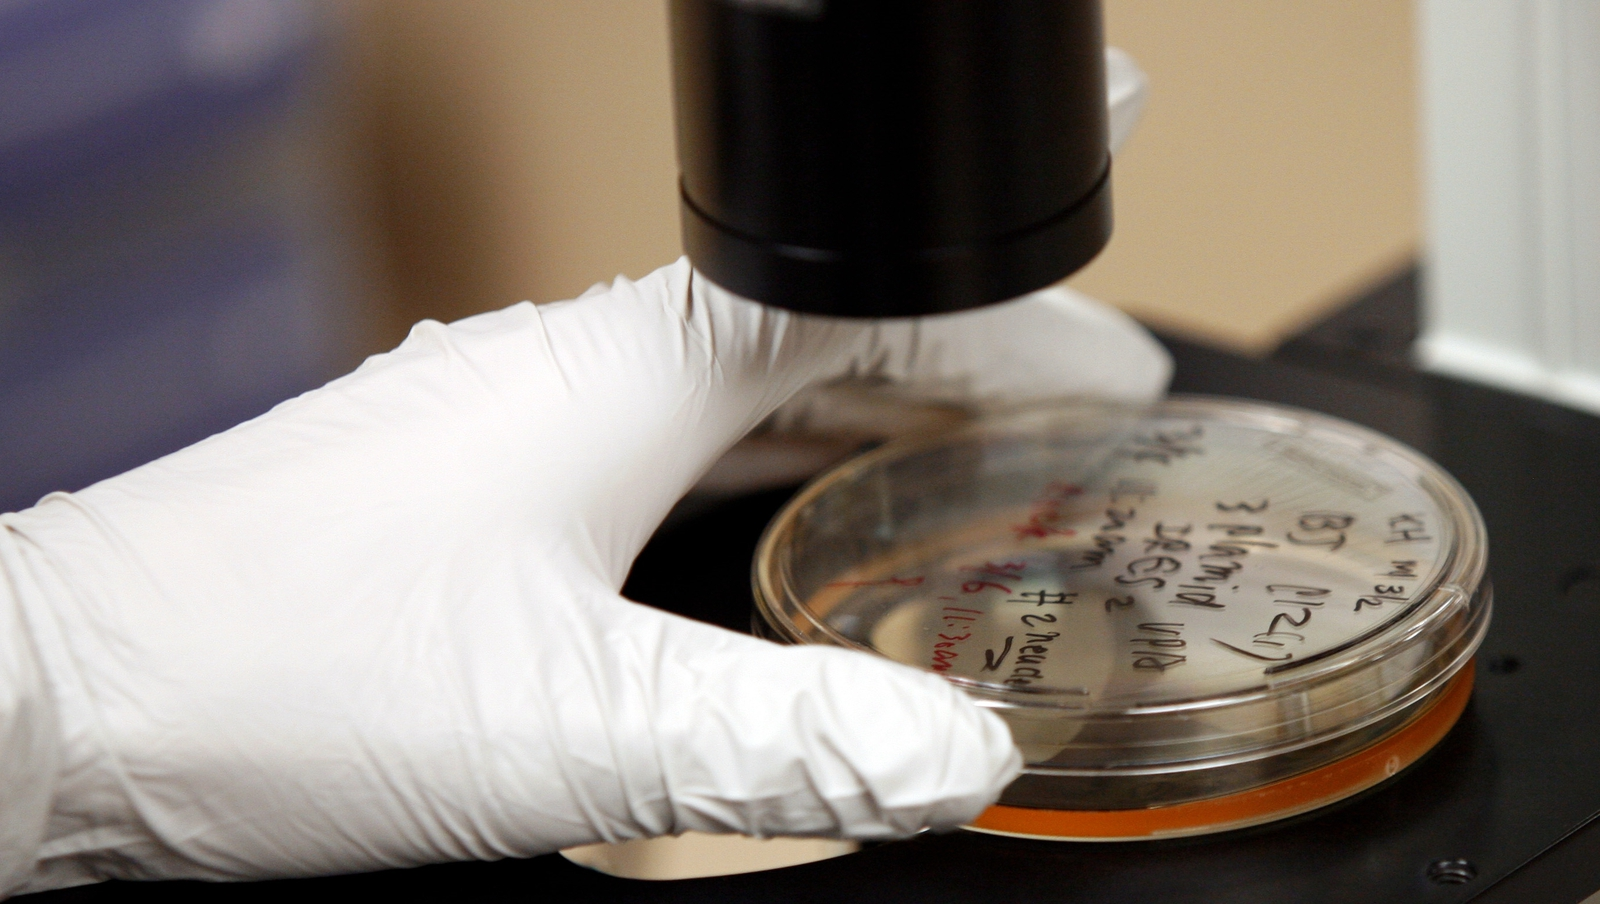 €40m boost for research projects